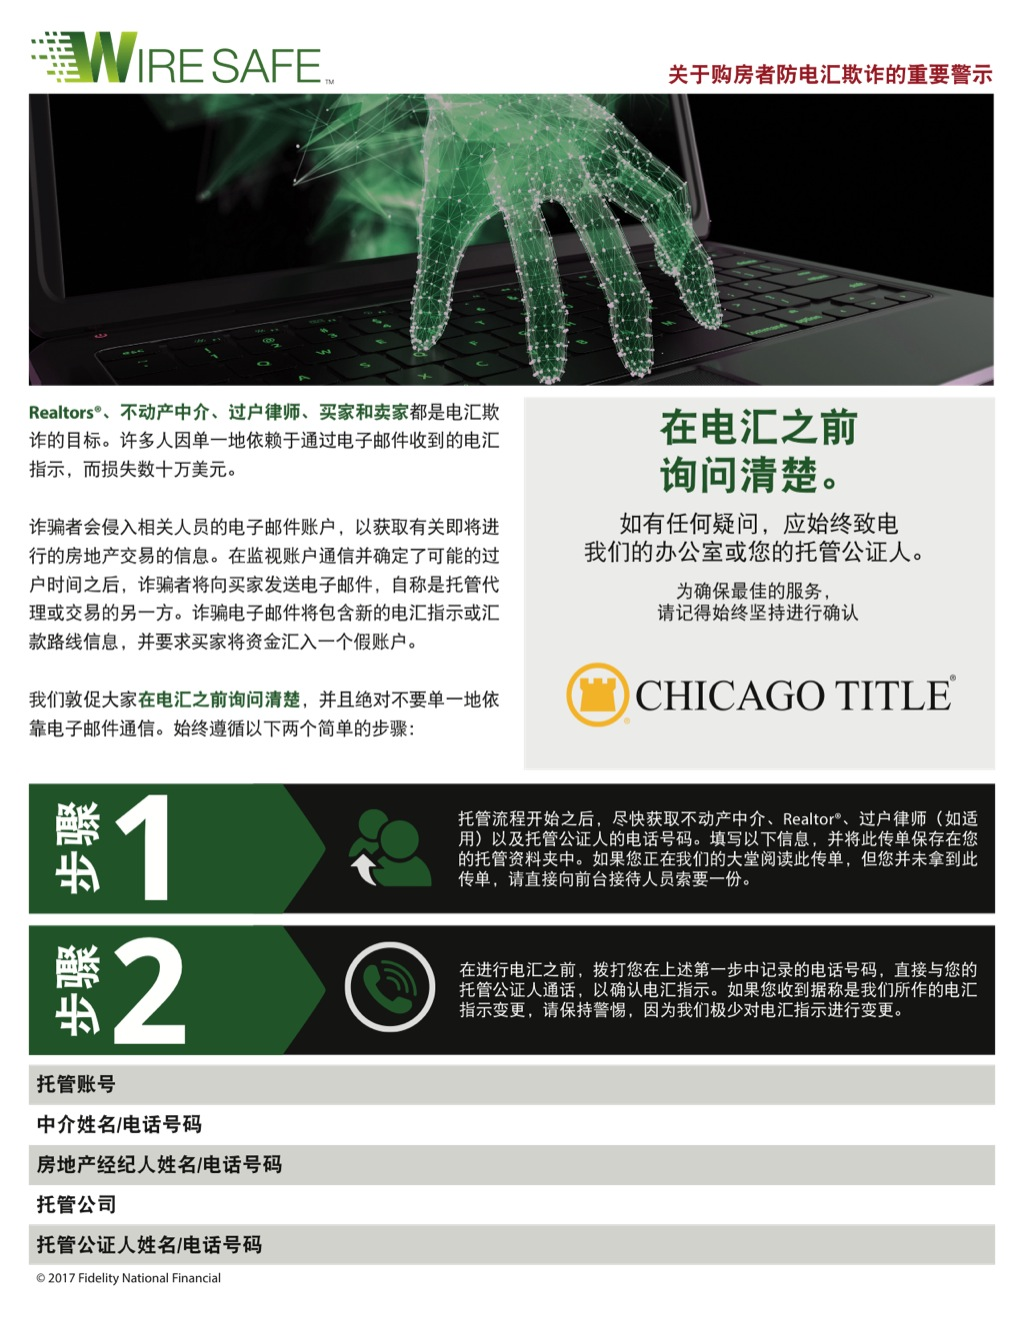 Corefact Wire Safe Buyer Flyer - Chinese - CTT